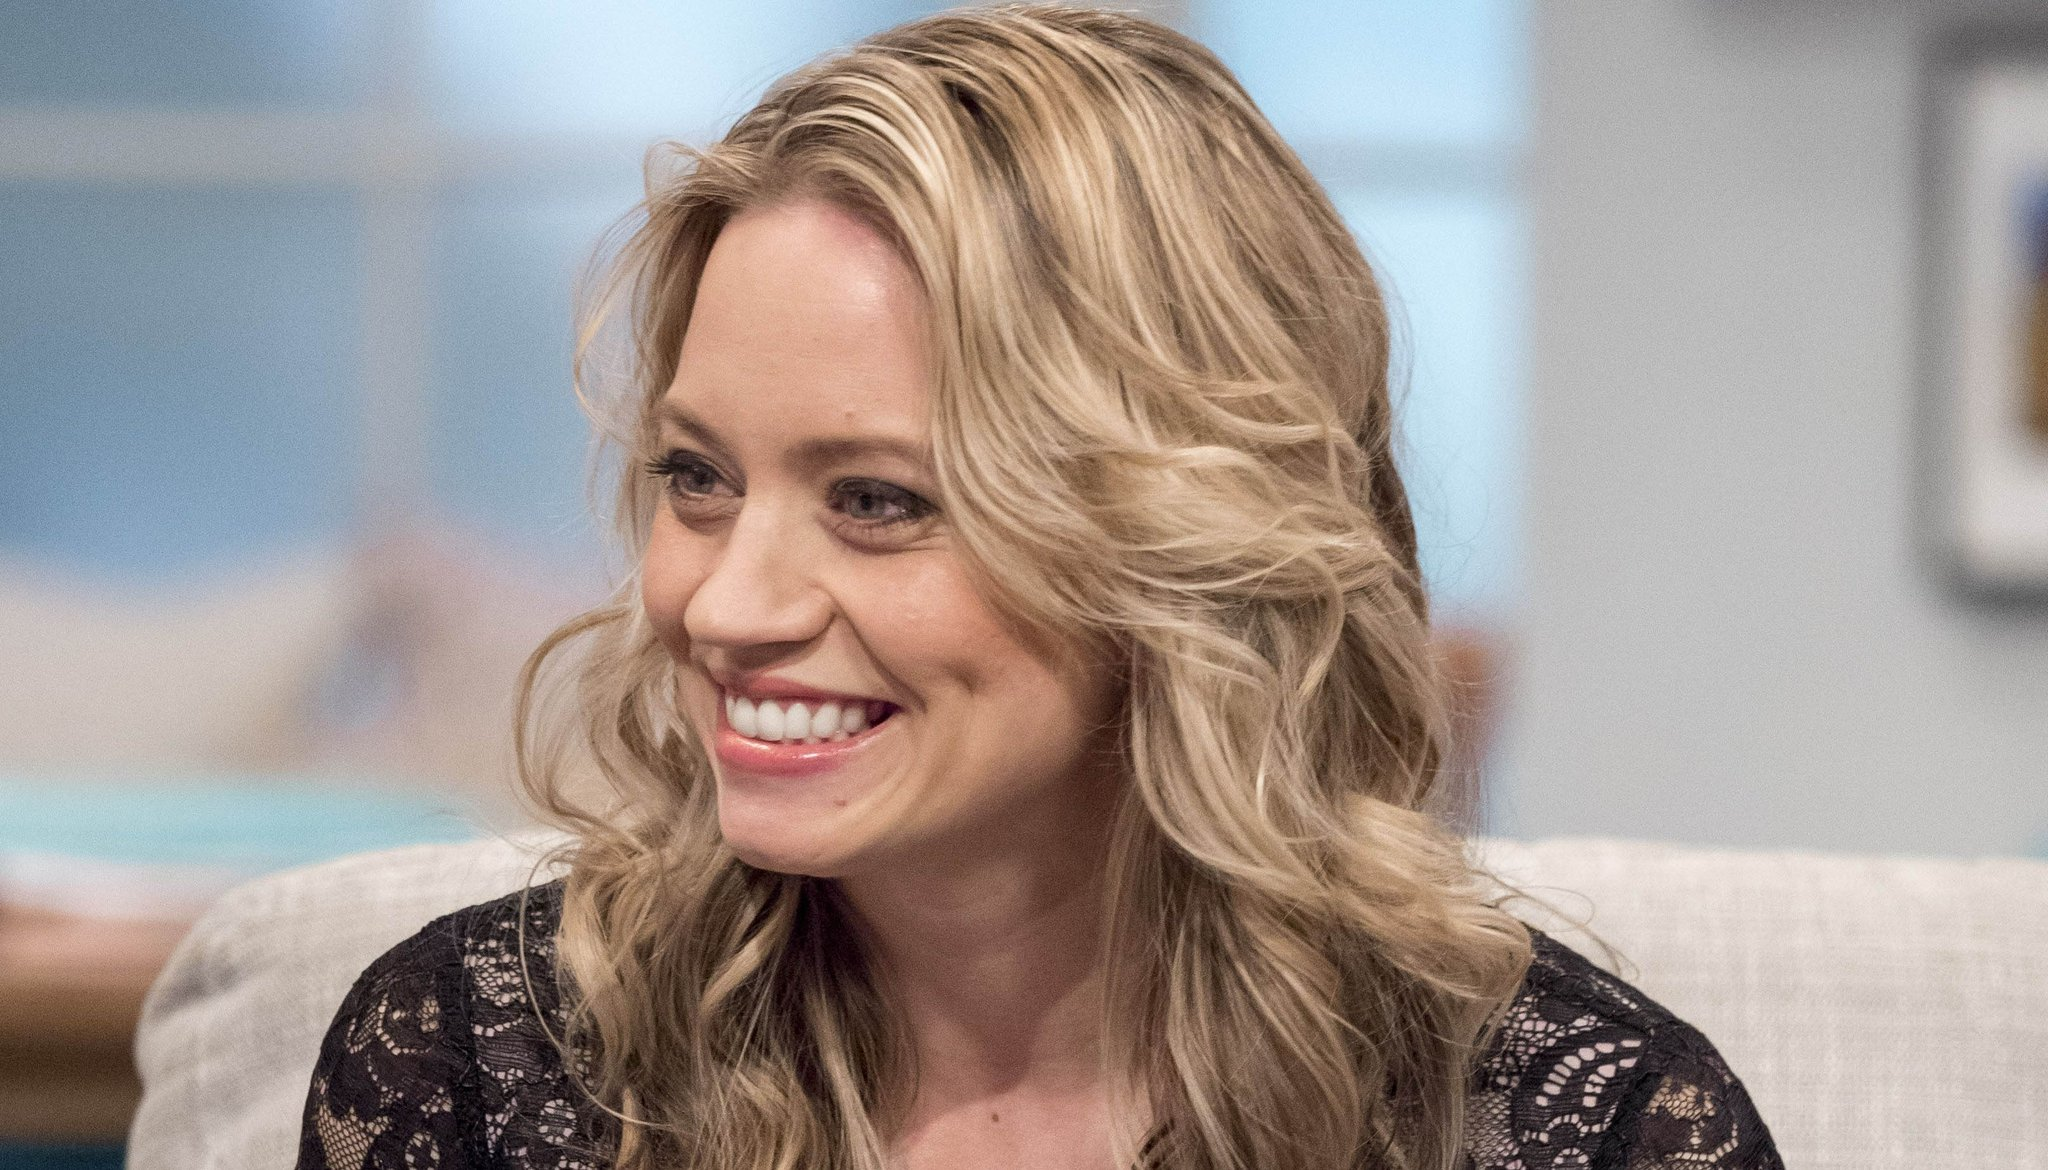 RT @ITVLorraine: 'I'd love to share a stage with them again' @KimberlyKWyatt on @pussycatdolls reunion talk! https://t.co/PvscZ5tHo0 https:…